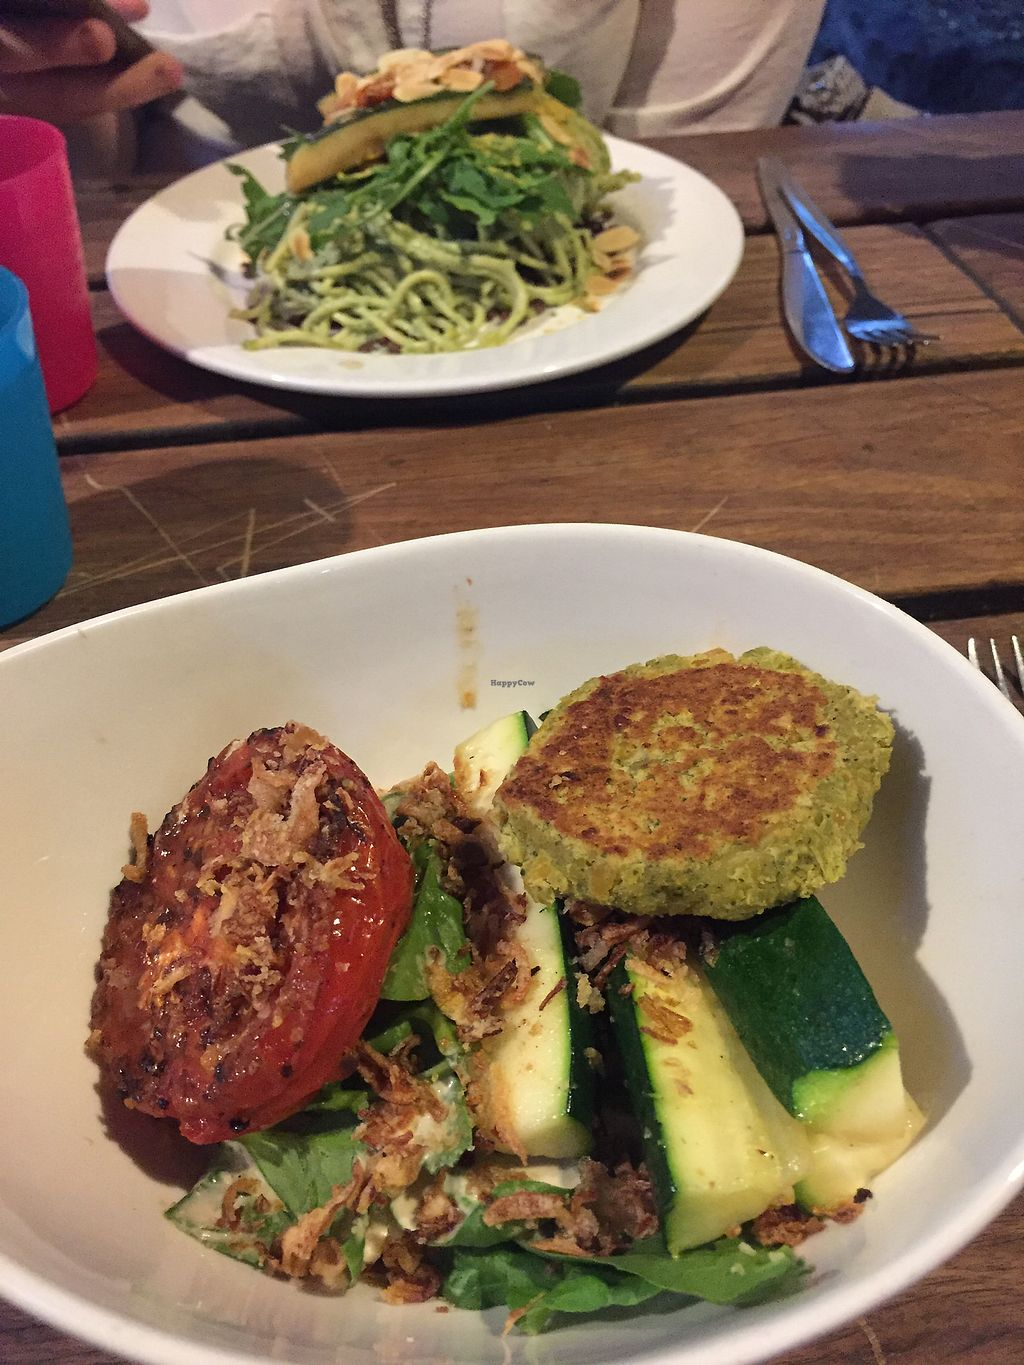 """Photo of Lentil As Anything - Abbotsford Convent  by <a href=""""/members/profile/meislnicoline"""">meislnicoline</a> <br/>Nice food :) <br/> April 12, 2018  - <a href='/contact/abuse/image/5313/384276'>Report</a>"""